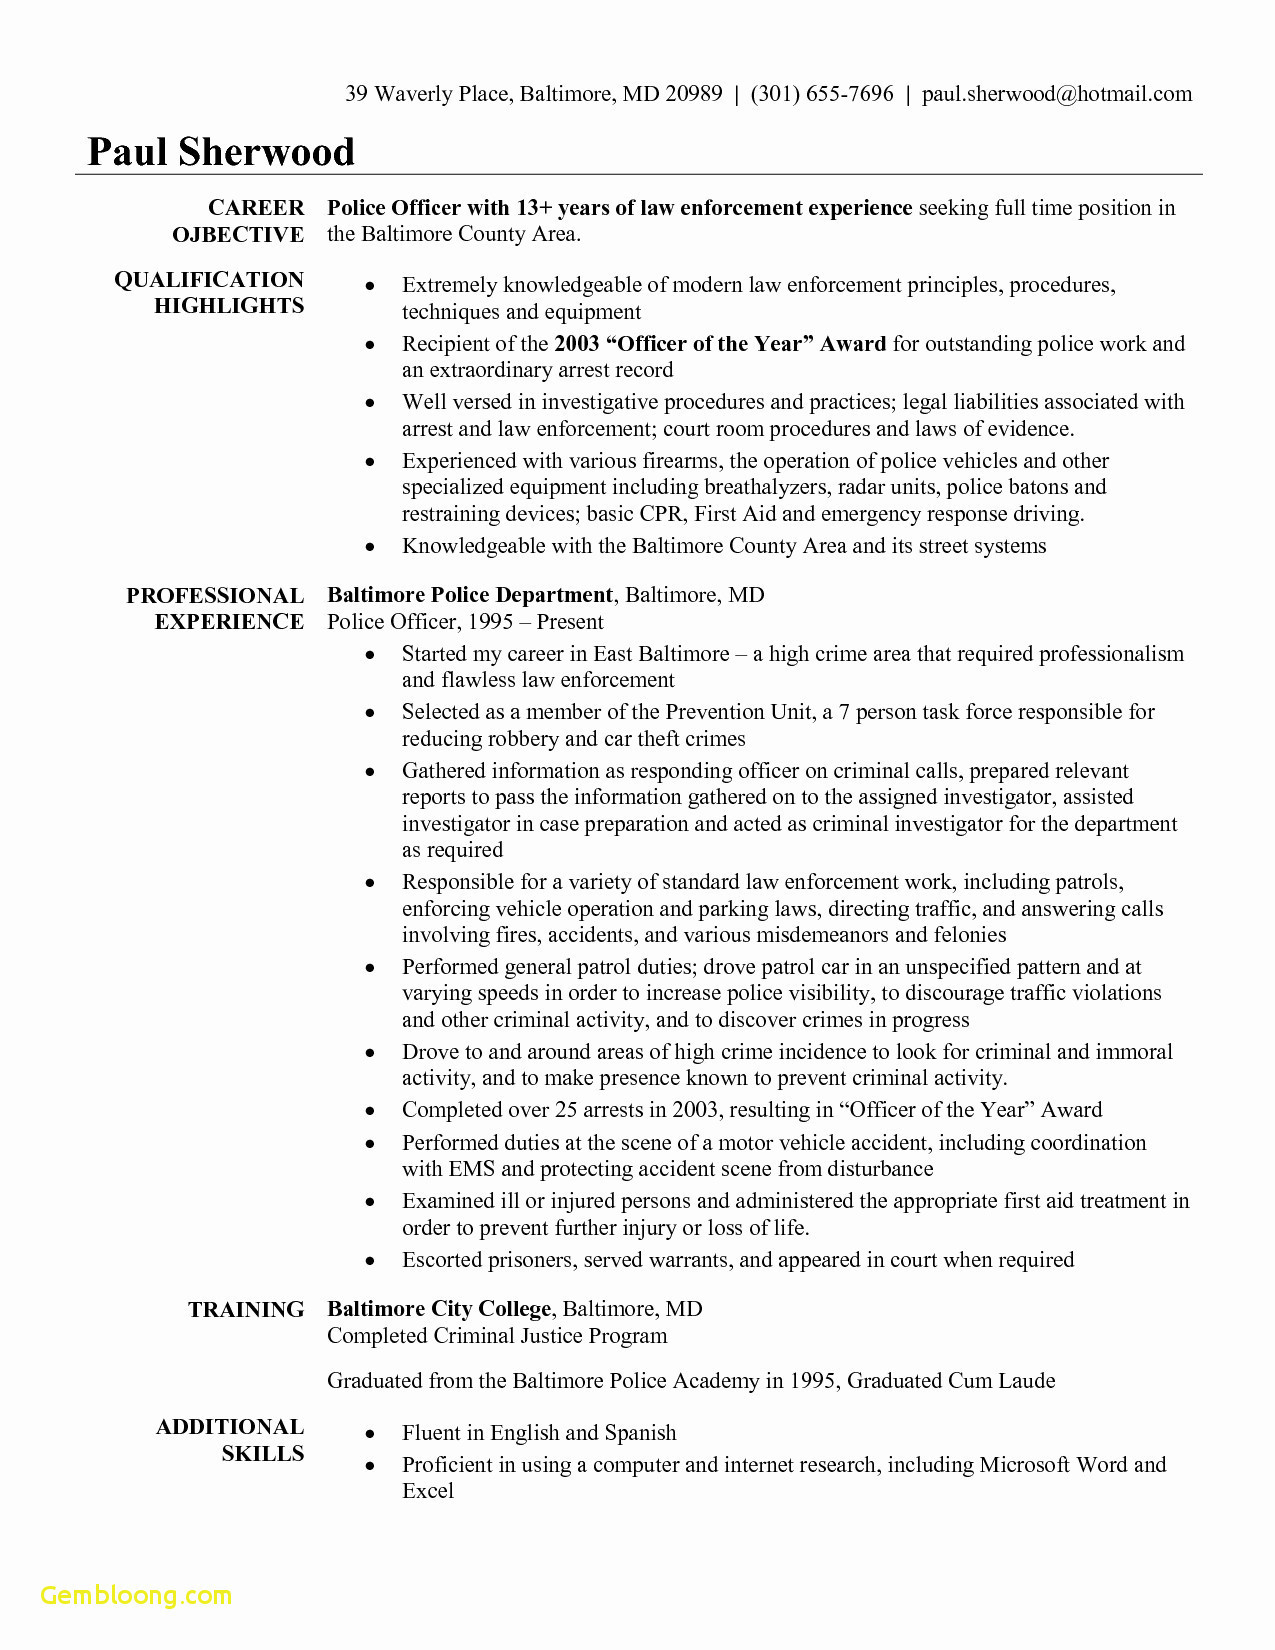 Law School Resume Template Word - How to Write A Resume for Law School Admission List Legal Resume